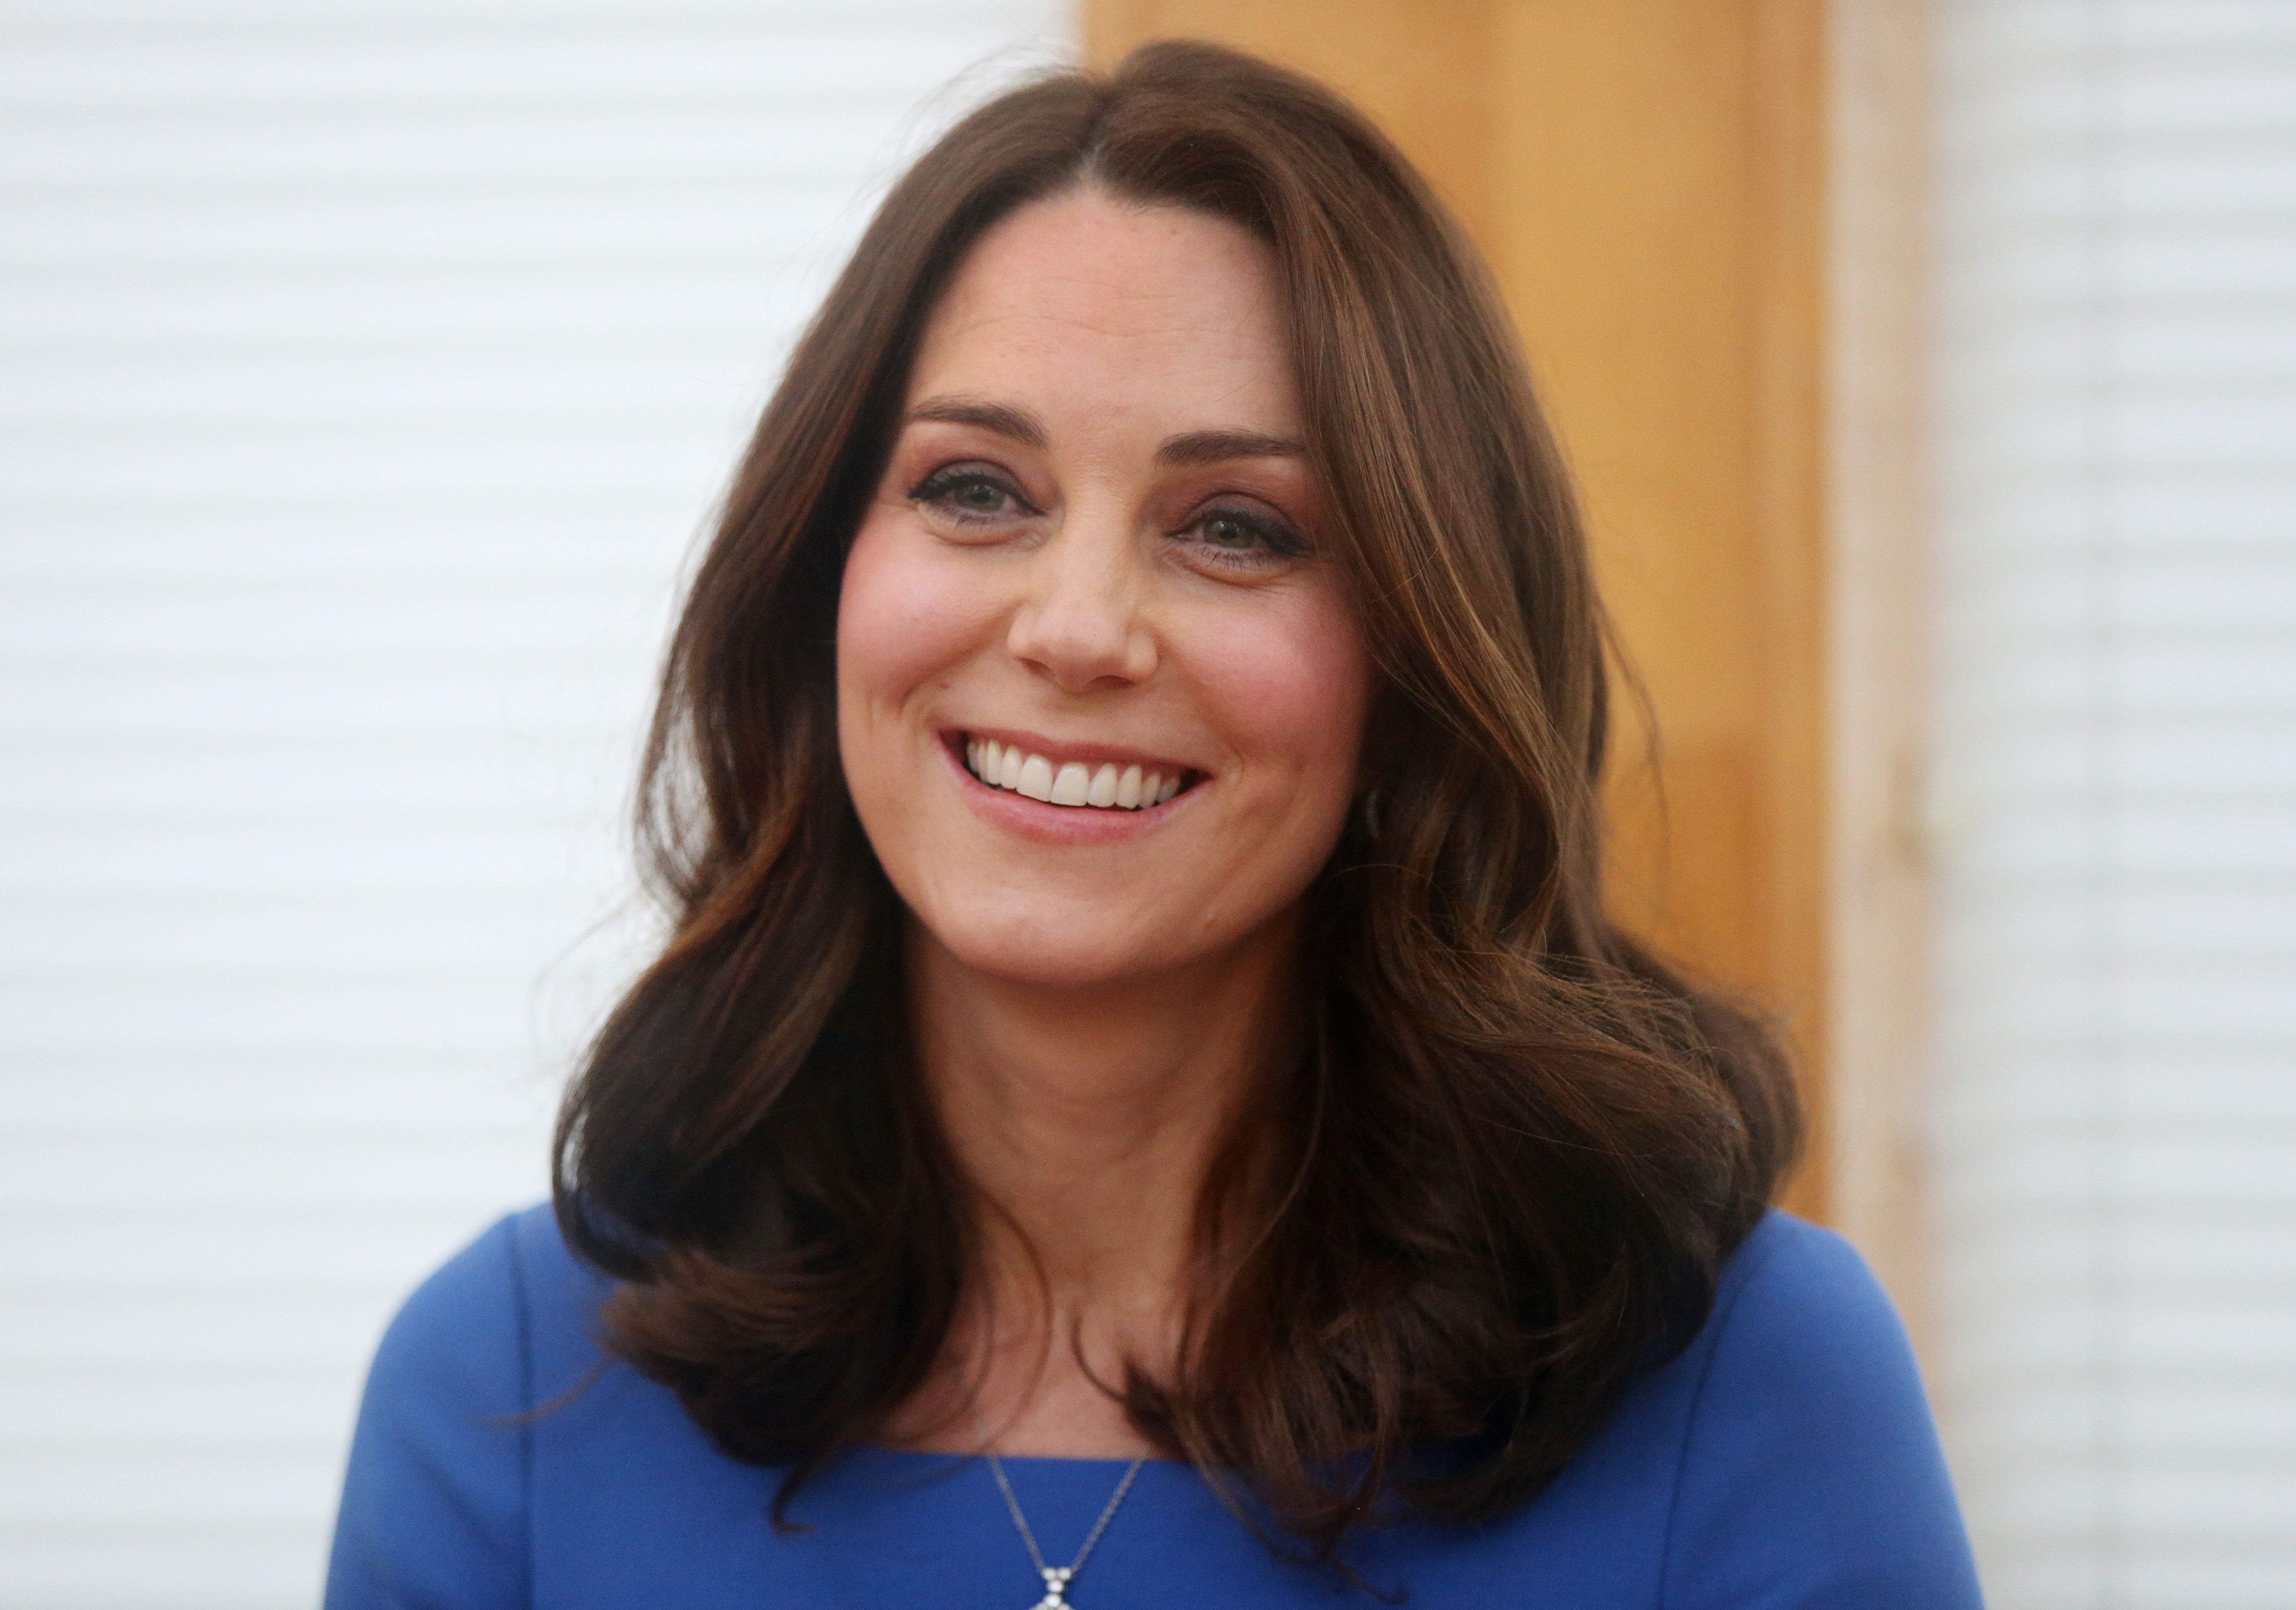 What You Need To Know If You Want To Donate Your Hair Like The Duchess Of